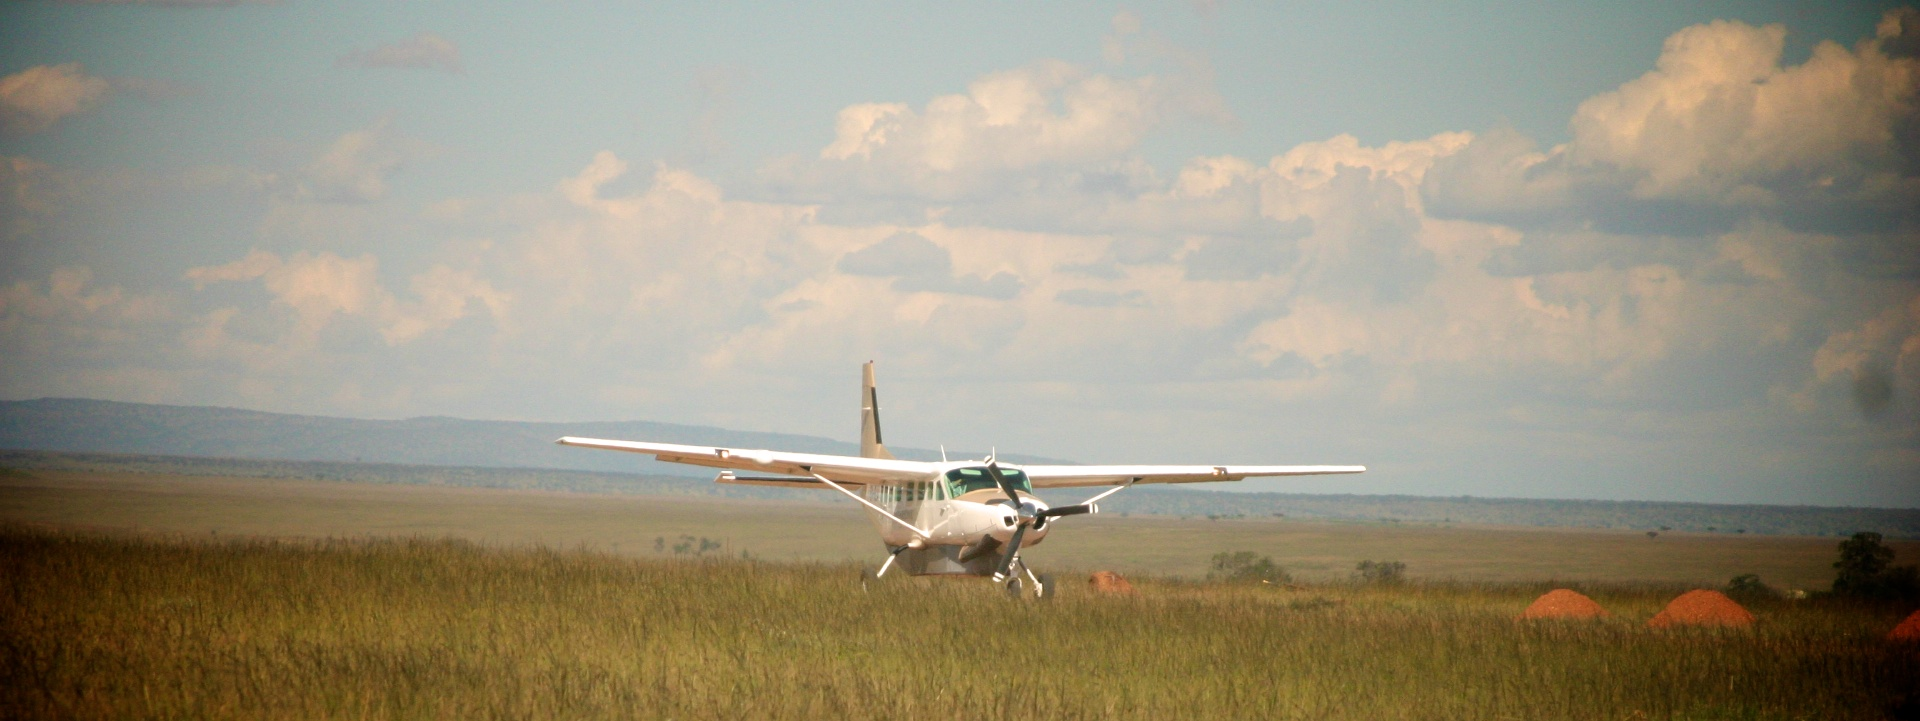 Kitchwa Tembo Landing Strip